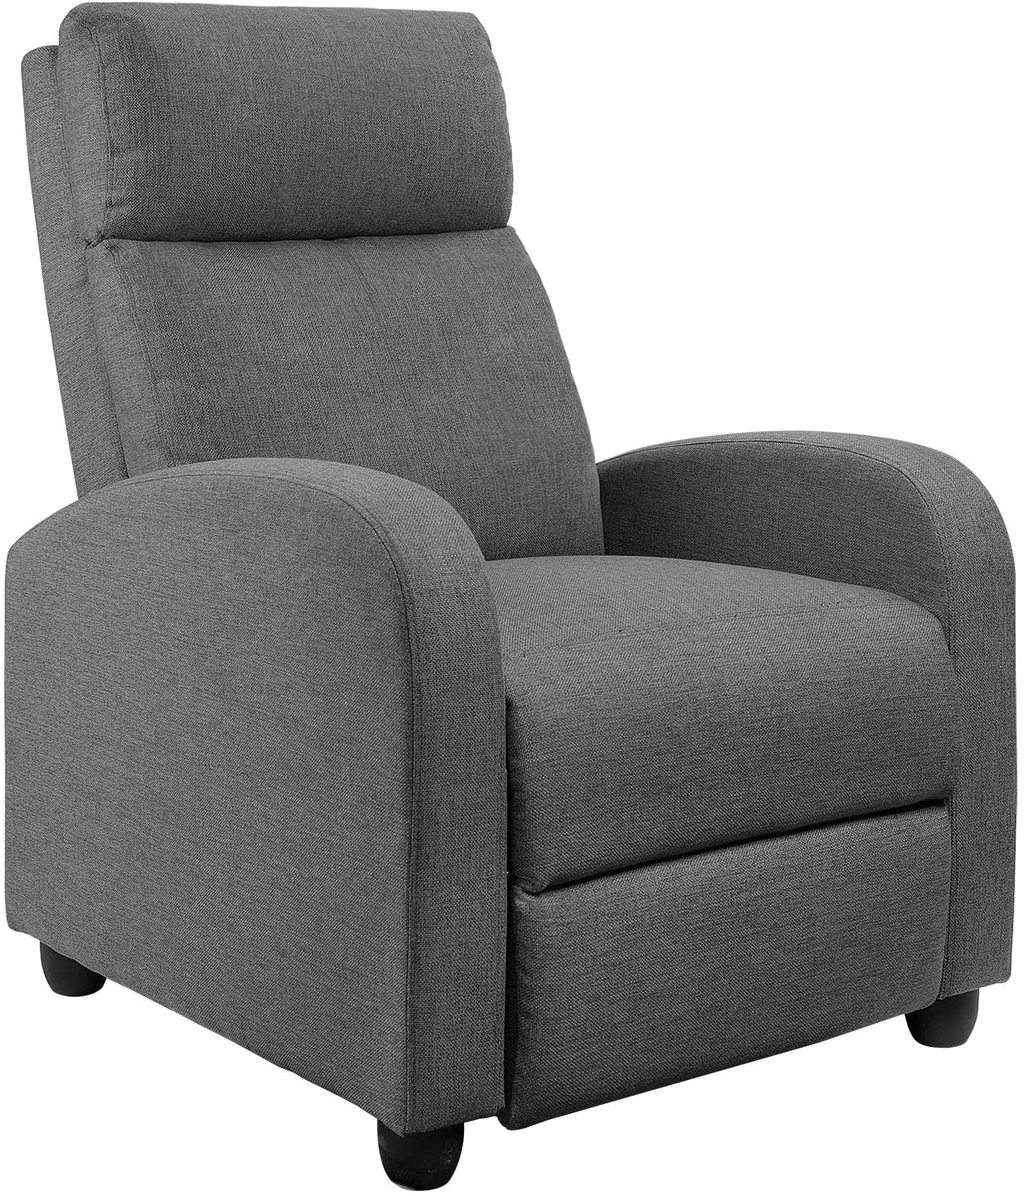 12. JUMMICO Fabric Single Massage Seat